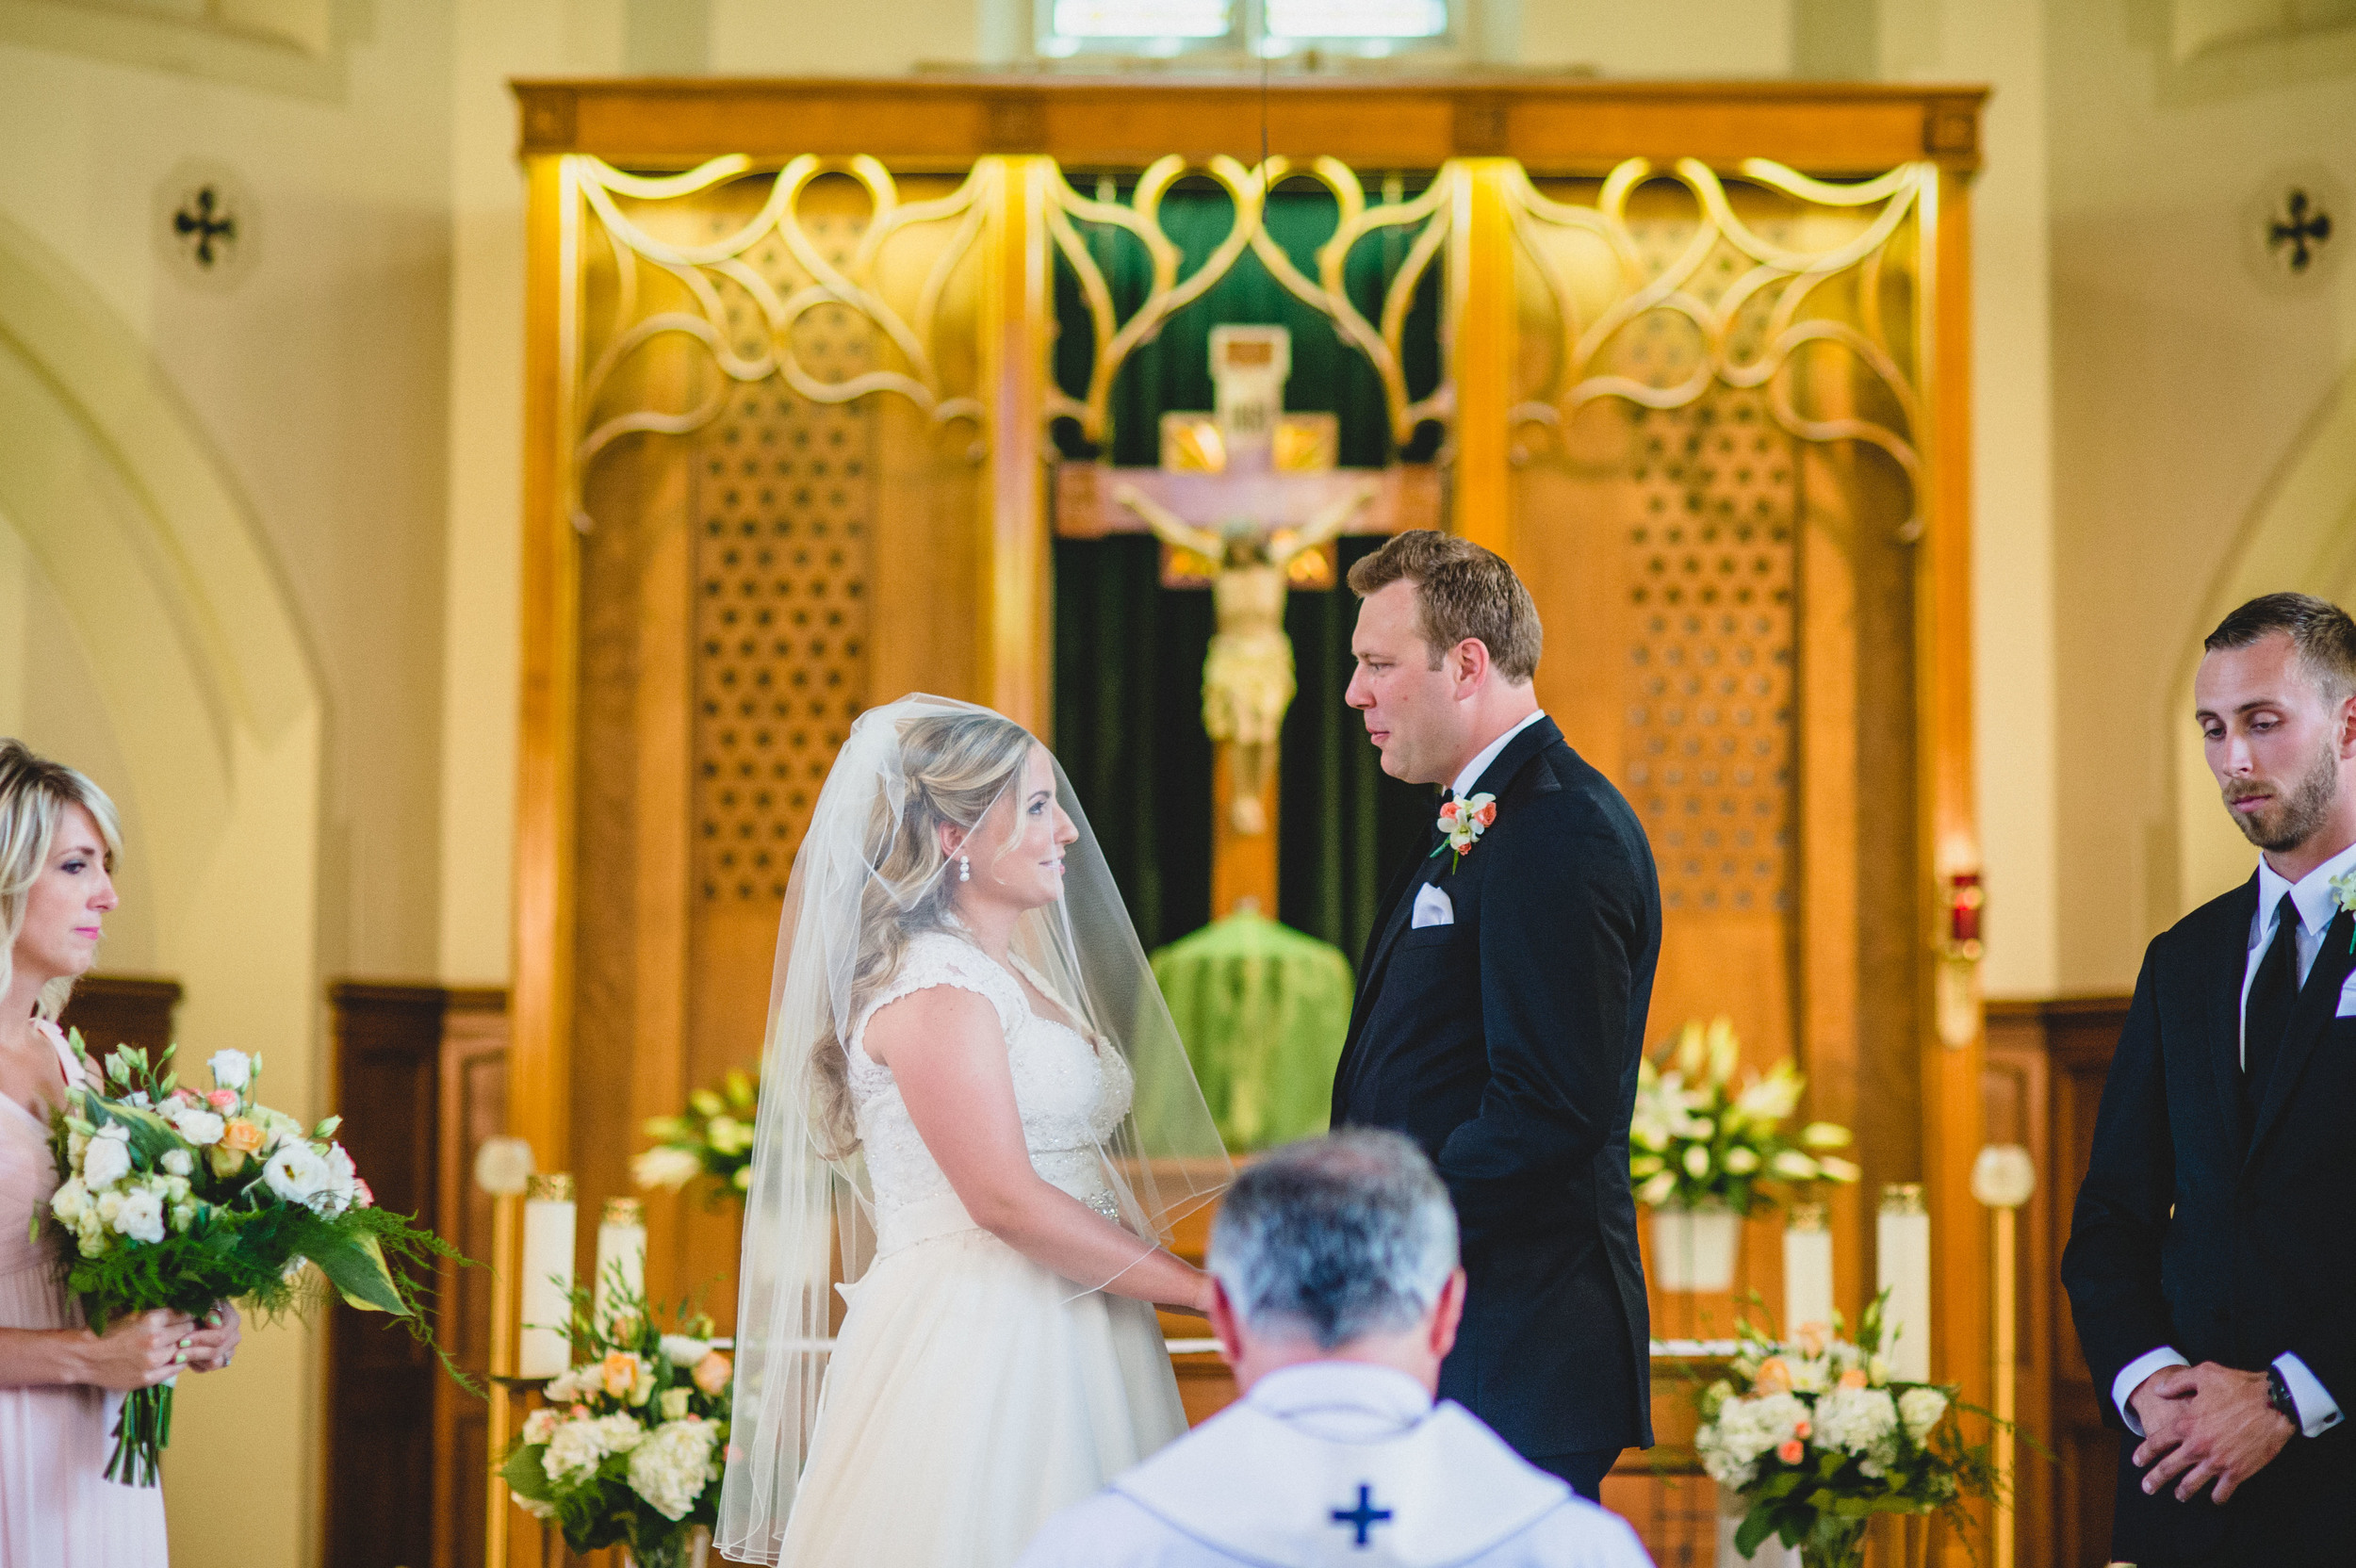 Vancouver St Augustine 's Church wedding photographer edward lai photography-42.jpg